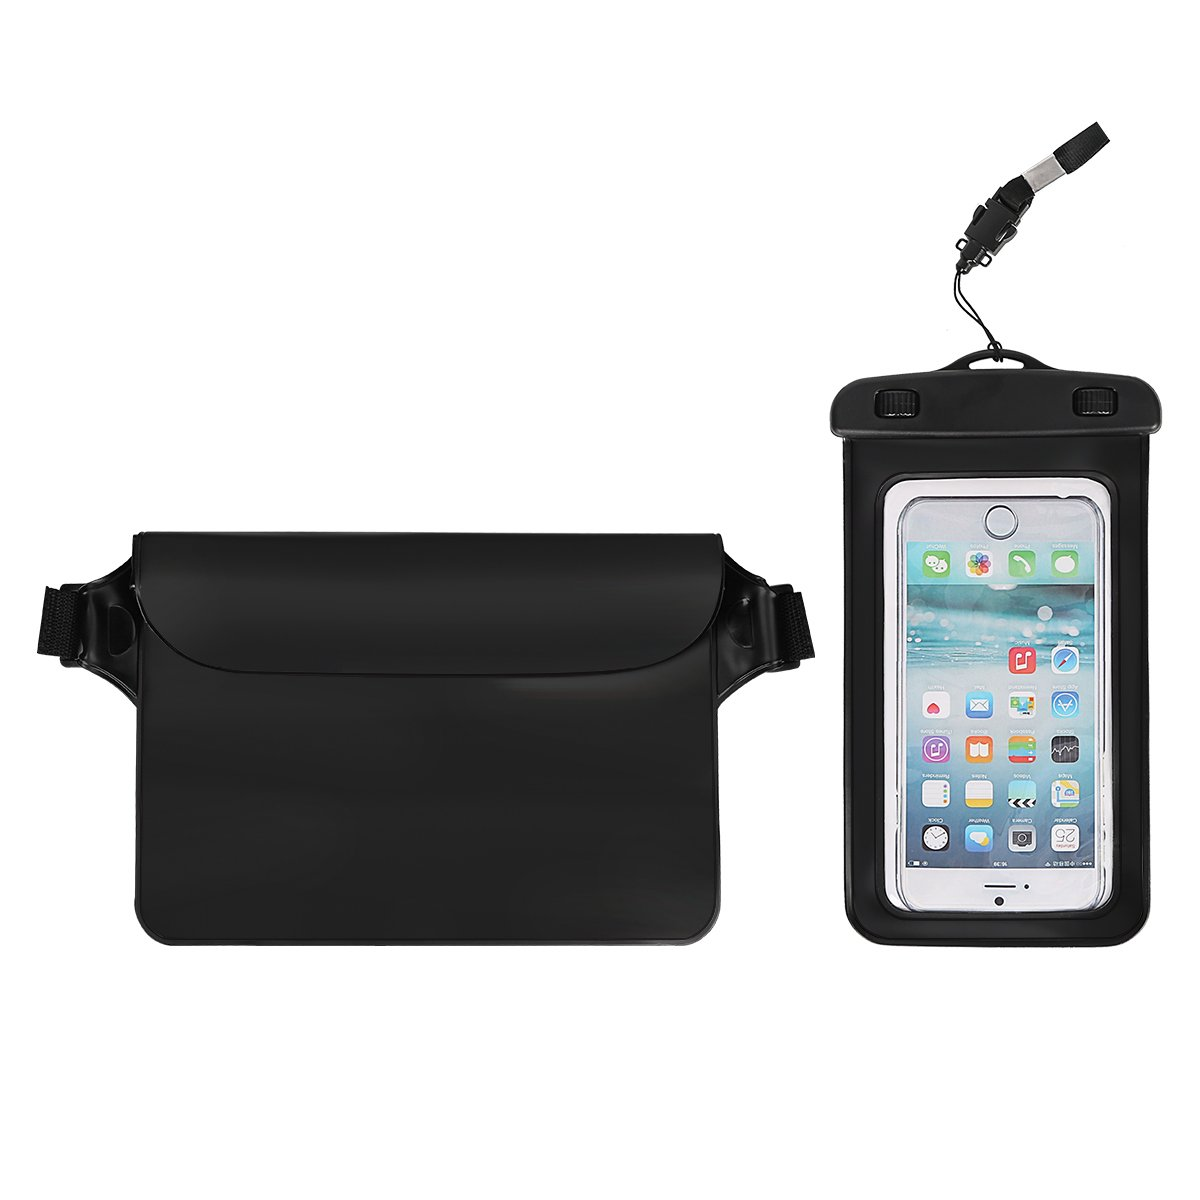 TLOVII Waterproof Bag Waterproof phone Case, Universal Waterproof Pouch Dry Bag Waterproof Case with Armband, Perfect for Swimming Kayak Boating, Suit for iPhone X 8 Plus Samsung S9 S8 Up to 7 Inch by TLOVII